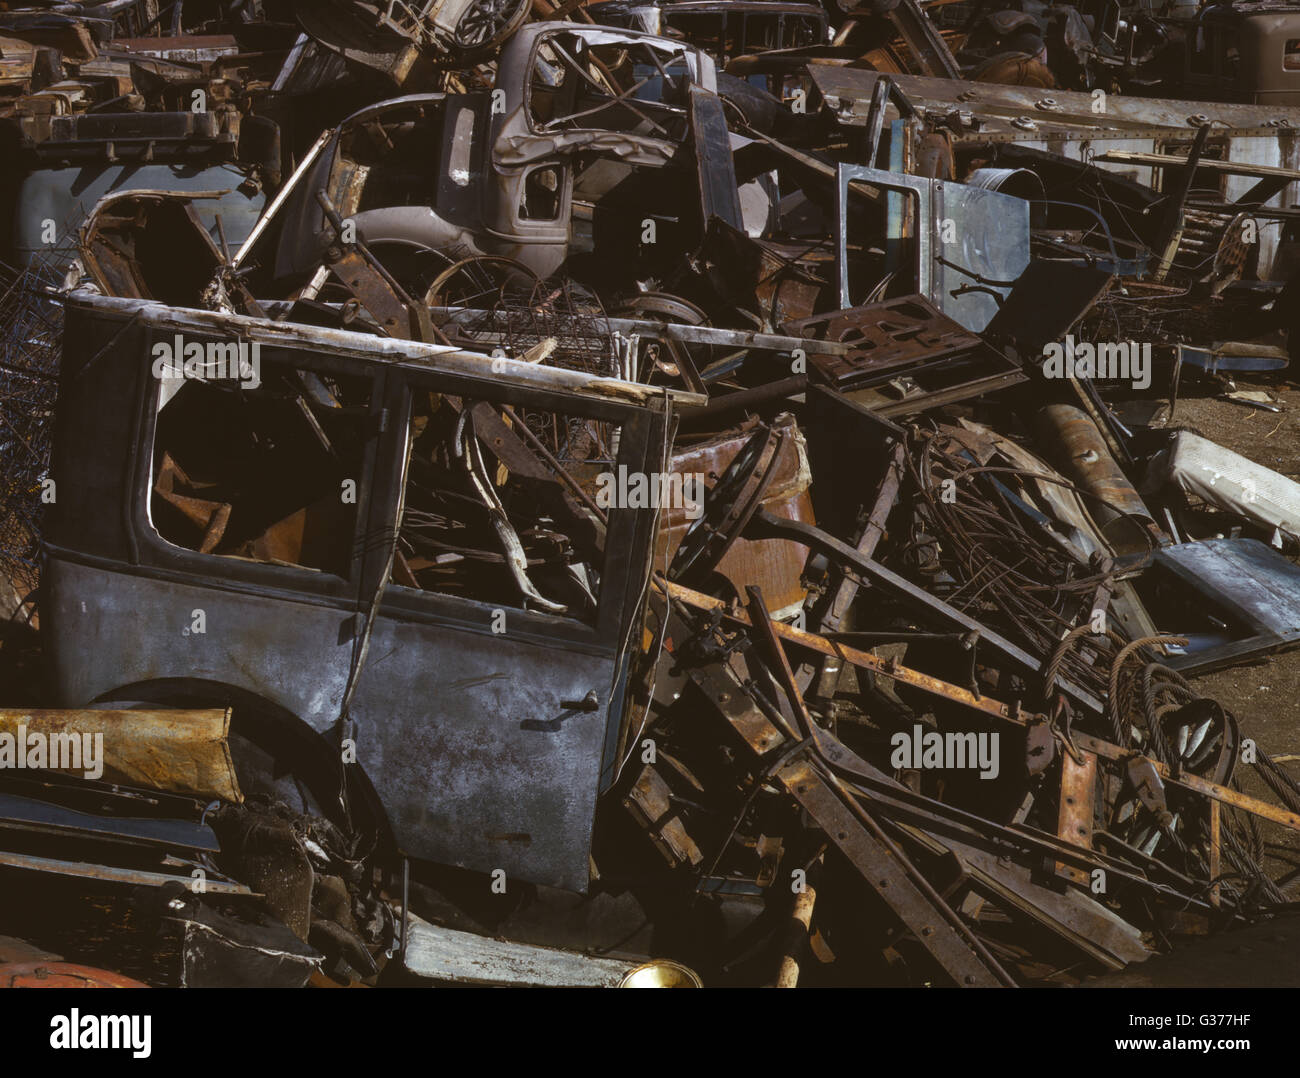 Scrap and salvage depot, Butte, Mont. Date 1942 Oct. - Stock Image